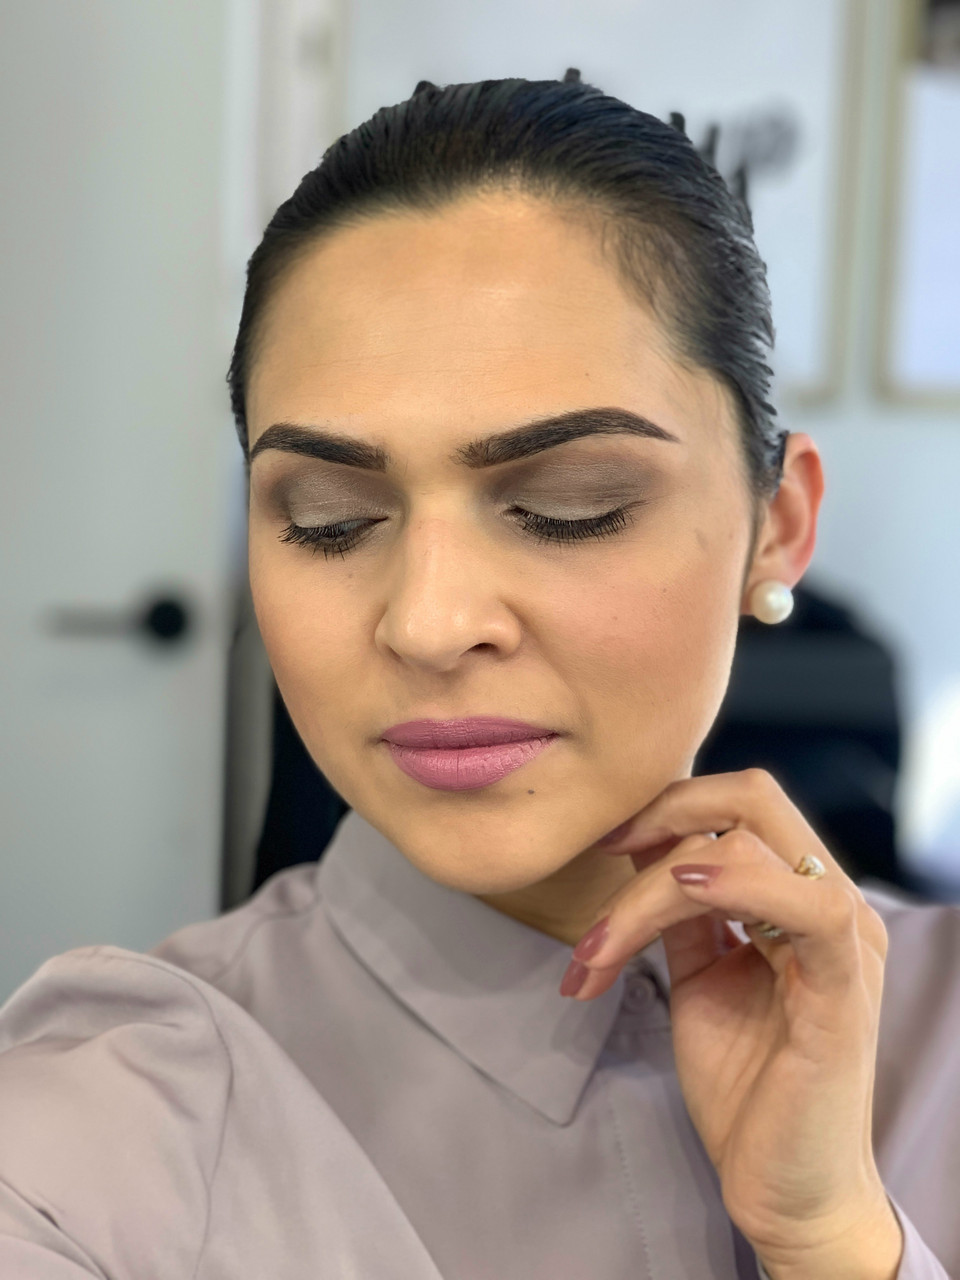 FRIDAY GLAM SESSION: A touch of Mauve